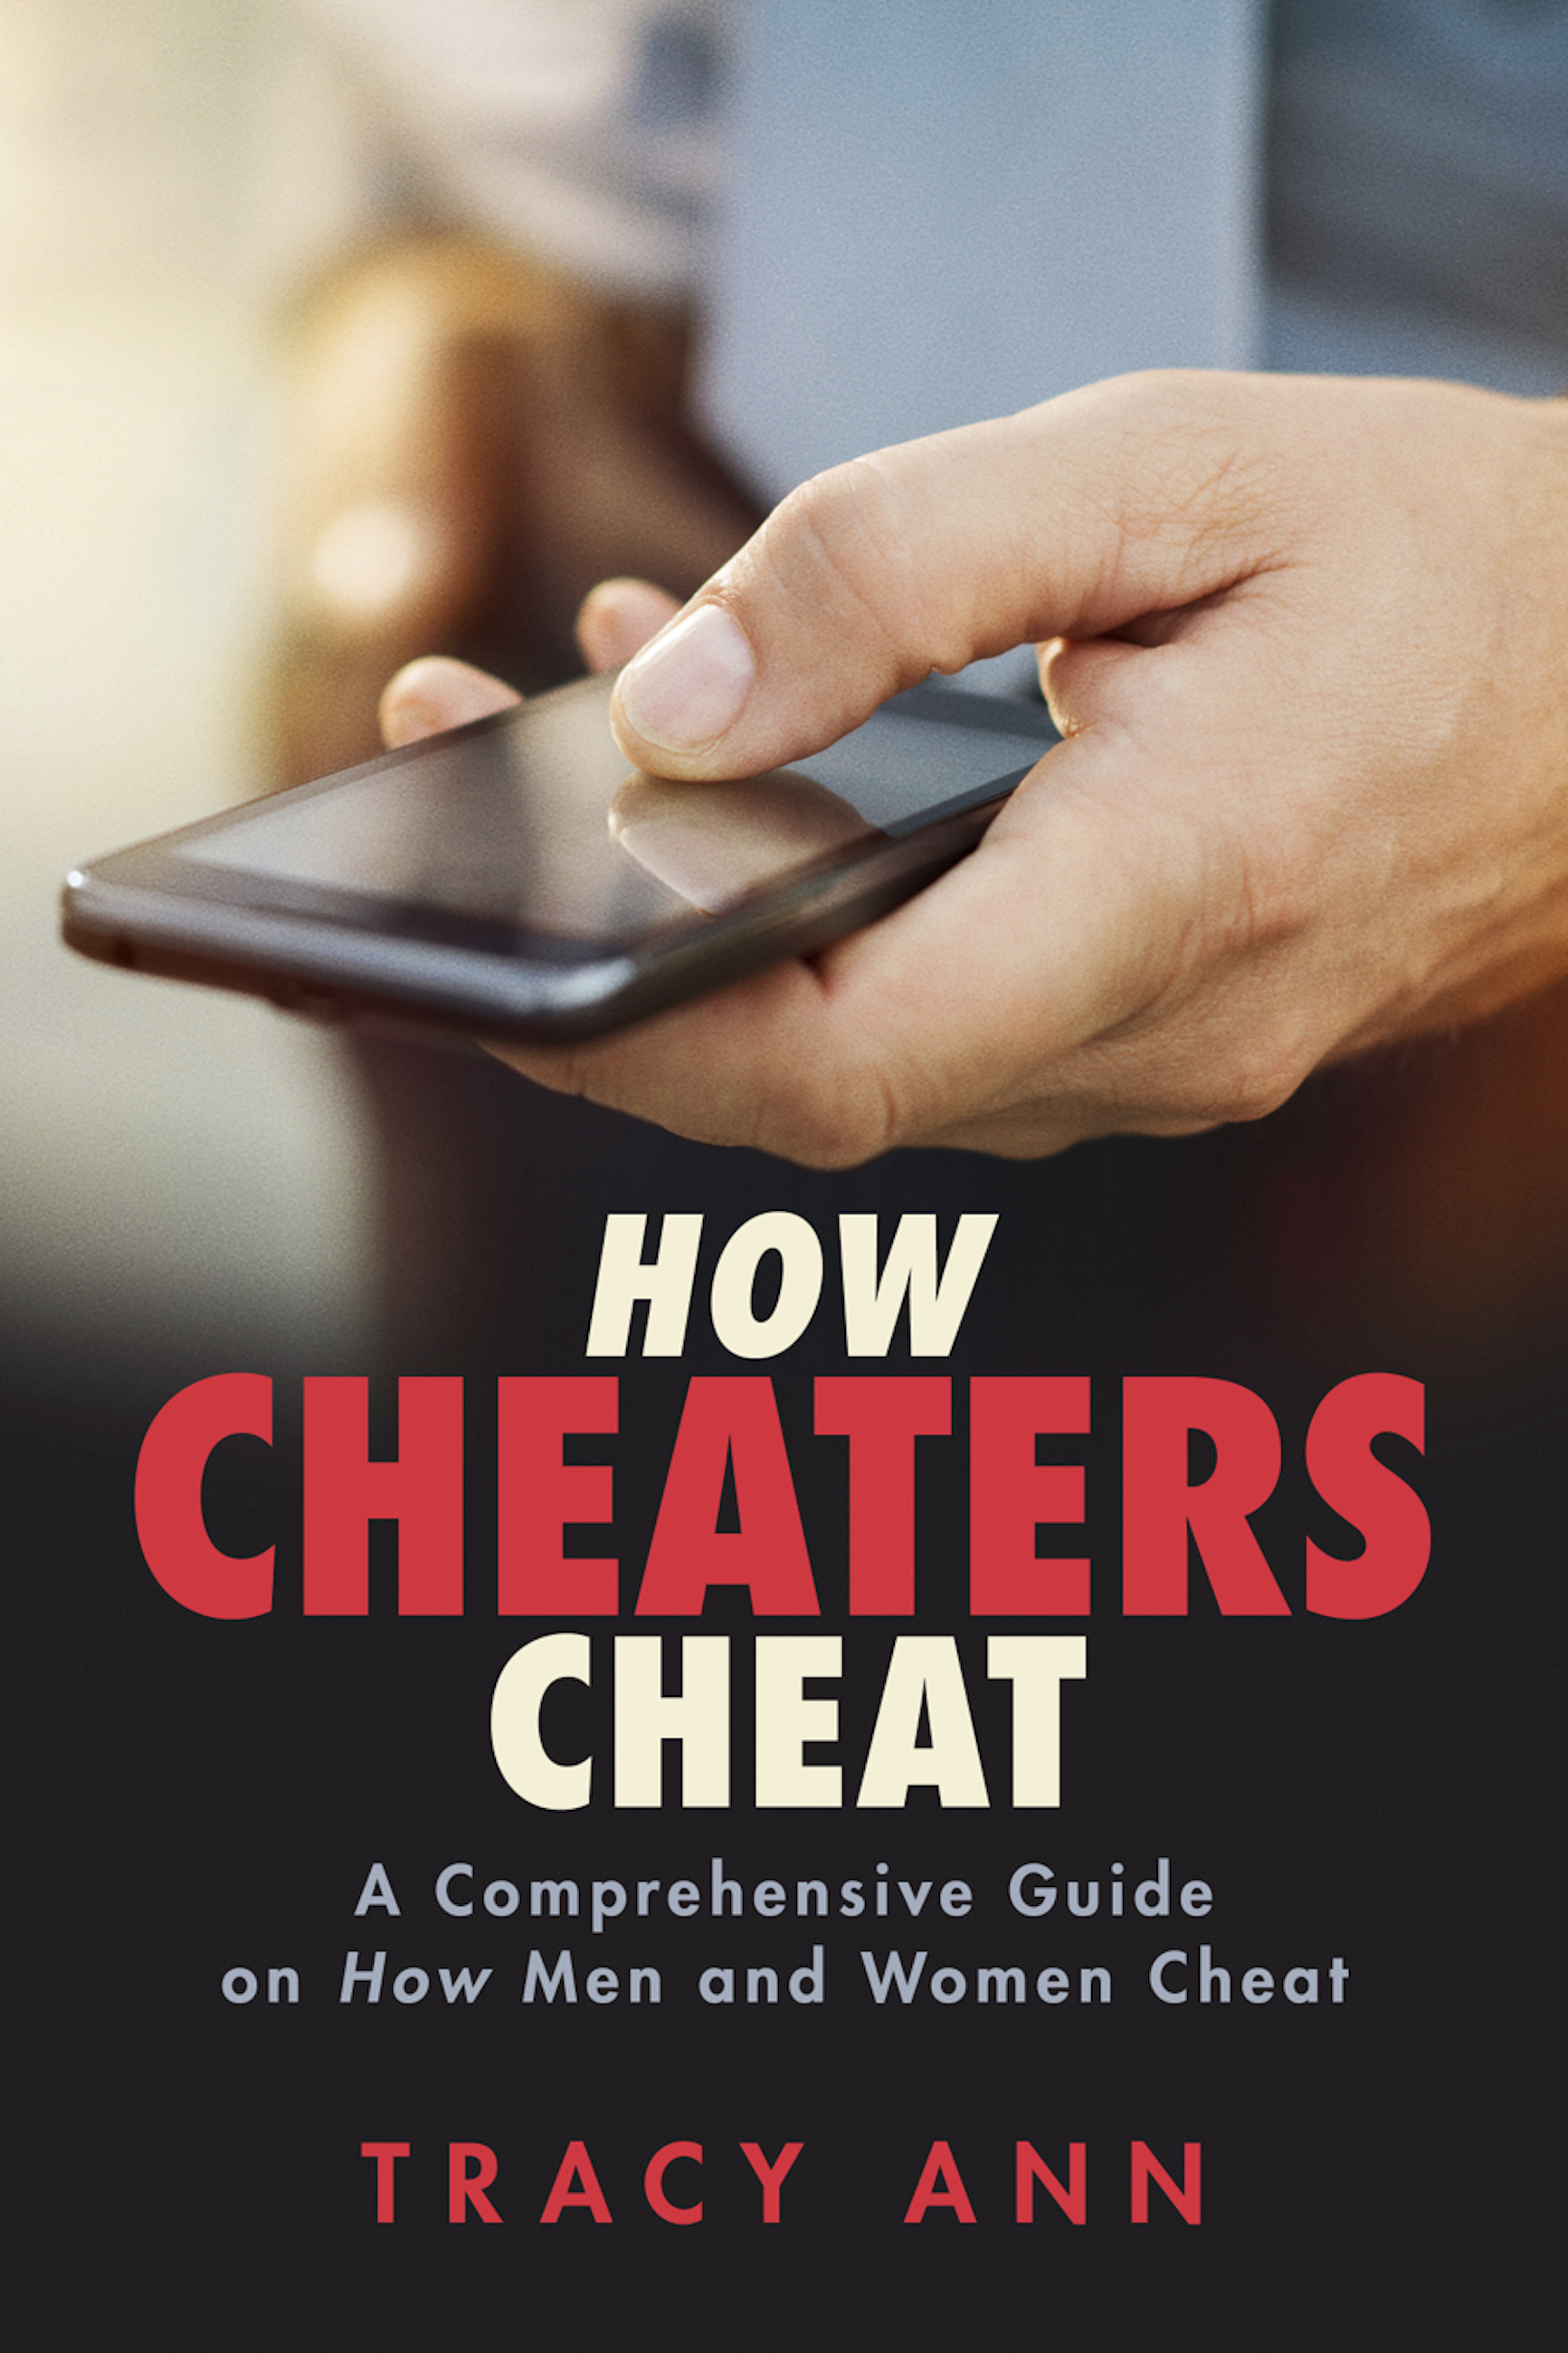 How Cheaters Cheat: A Comprehensive Guide On How Men and Women Cheat Tracy Ann